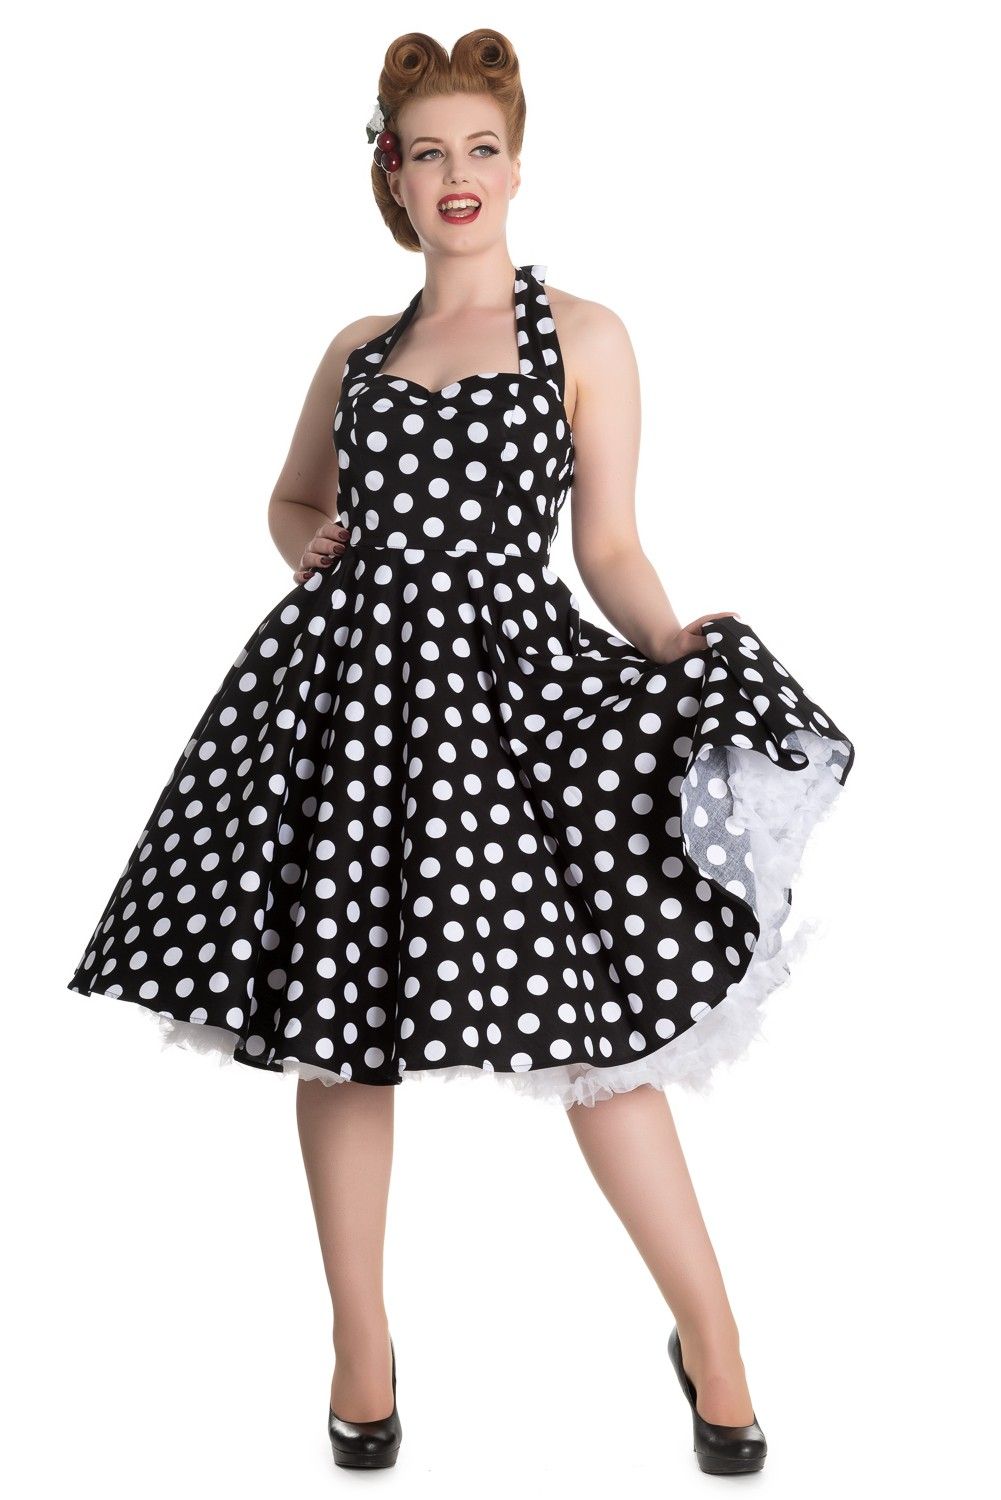 mariam 50er jahre retro polka dots swing petticoat kleid von hell bunny frauen kleider. Black Bedroom Furniture Sets. Home Design Ideas